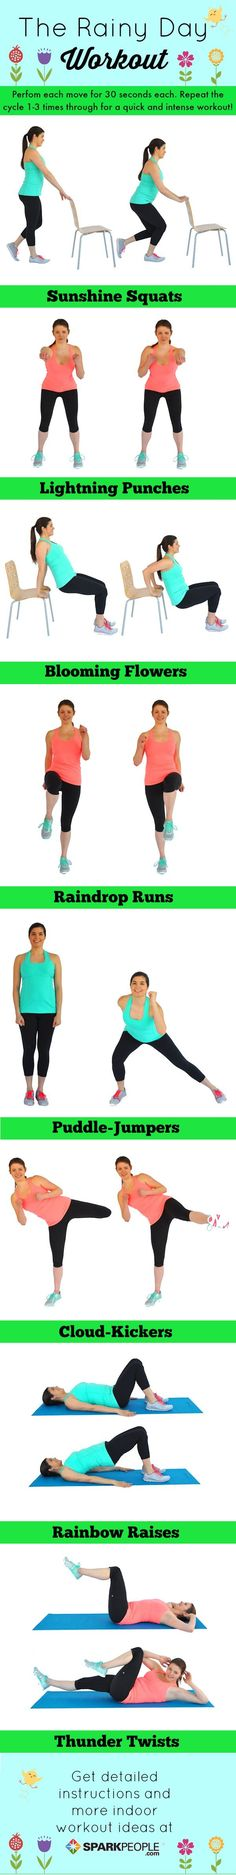 The Rainy Day Workout. Banish rainy day boredom with these awesome cloud-crushing moves! | via @SparkPeople